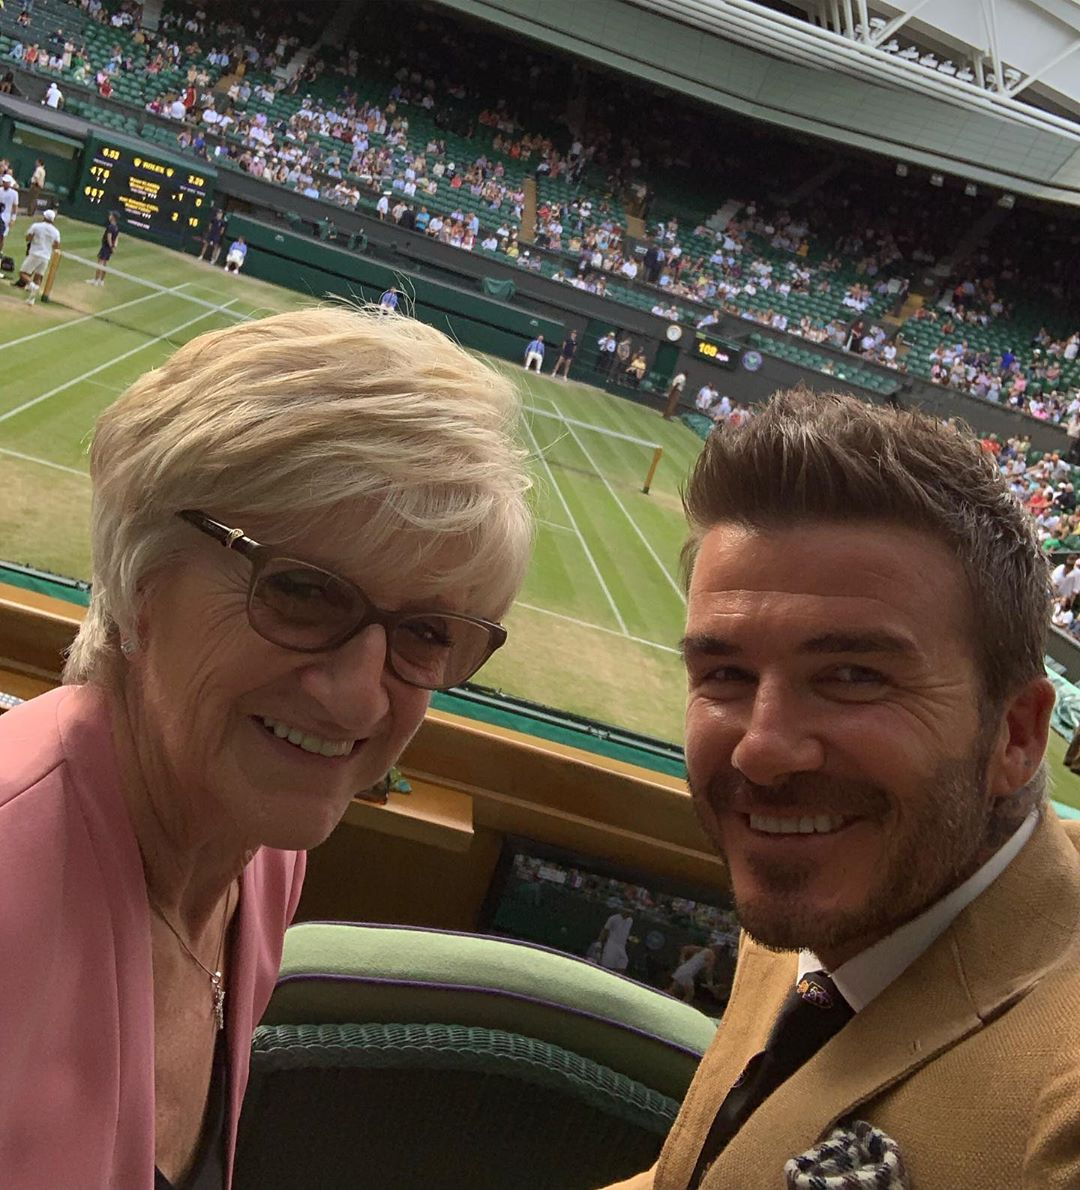 David Beckham Instagram: Fun day at Wimbledon  with mum..     ...